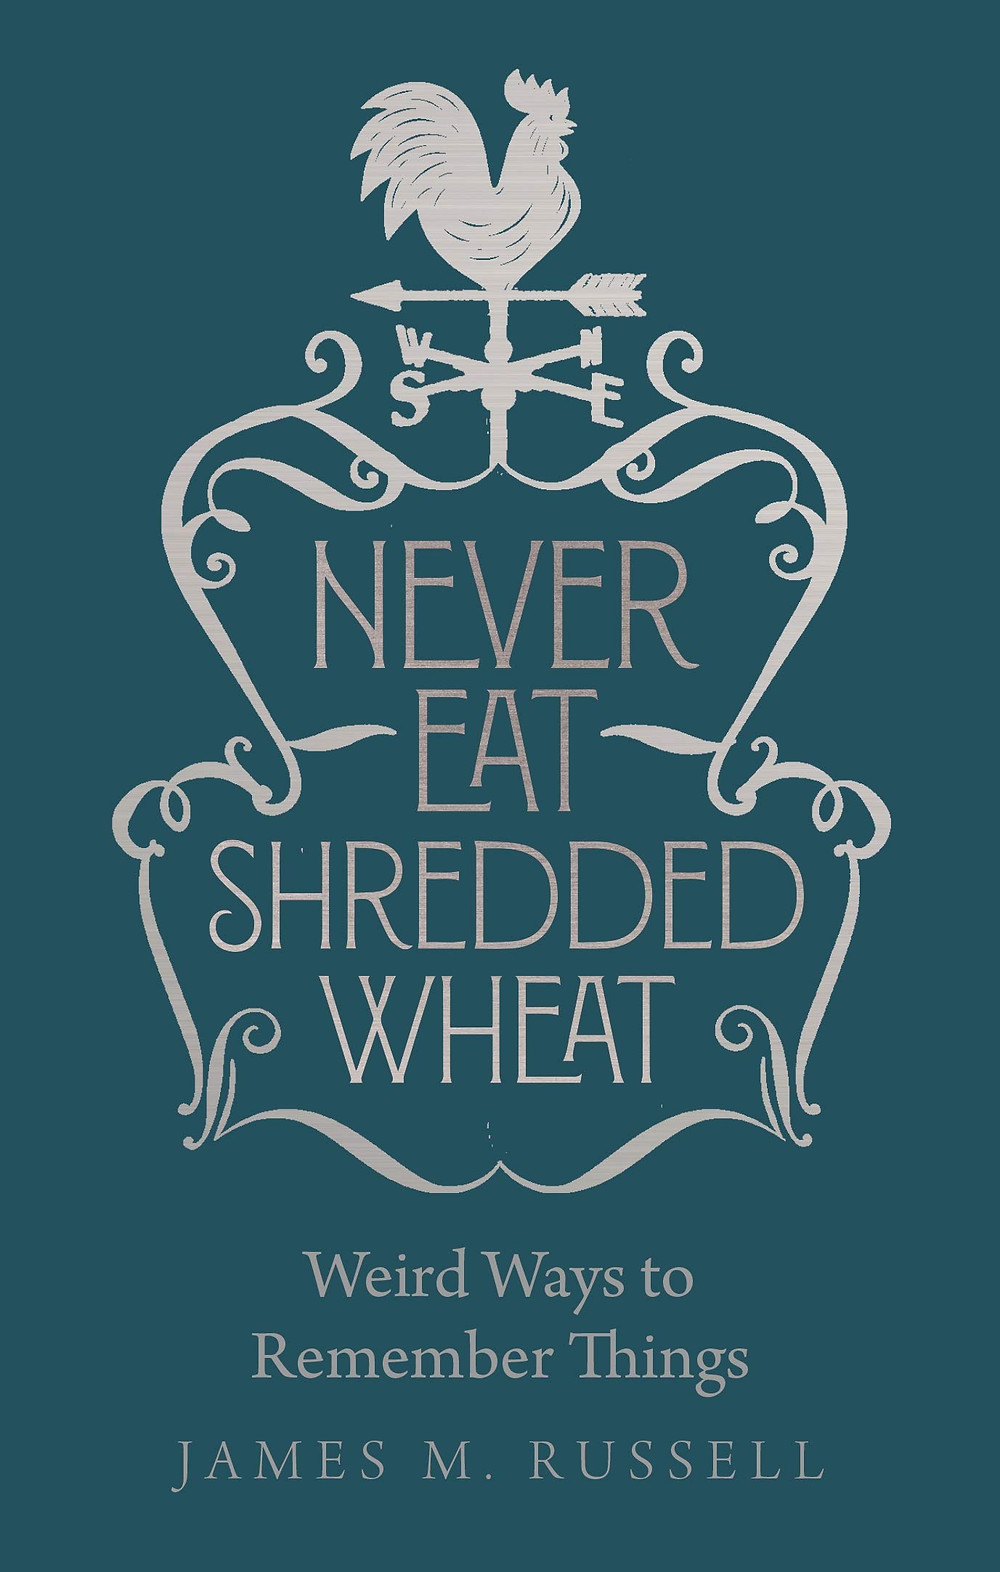 Never Eat Shredded Wheat: Weird Ways to Remember Things Hardcover book with free worldwide delivery at the book depository